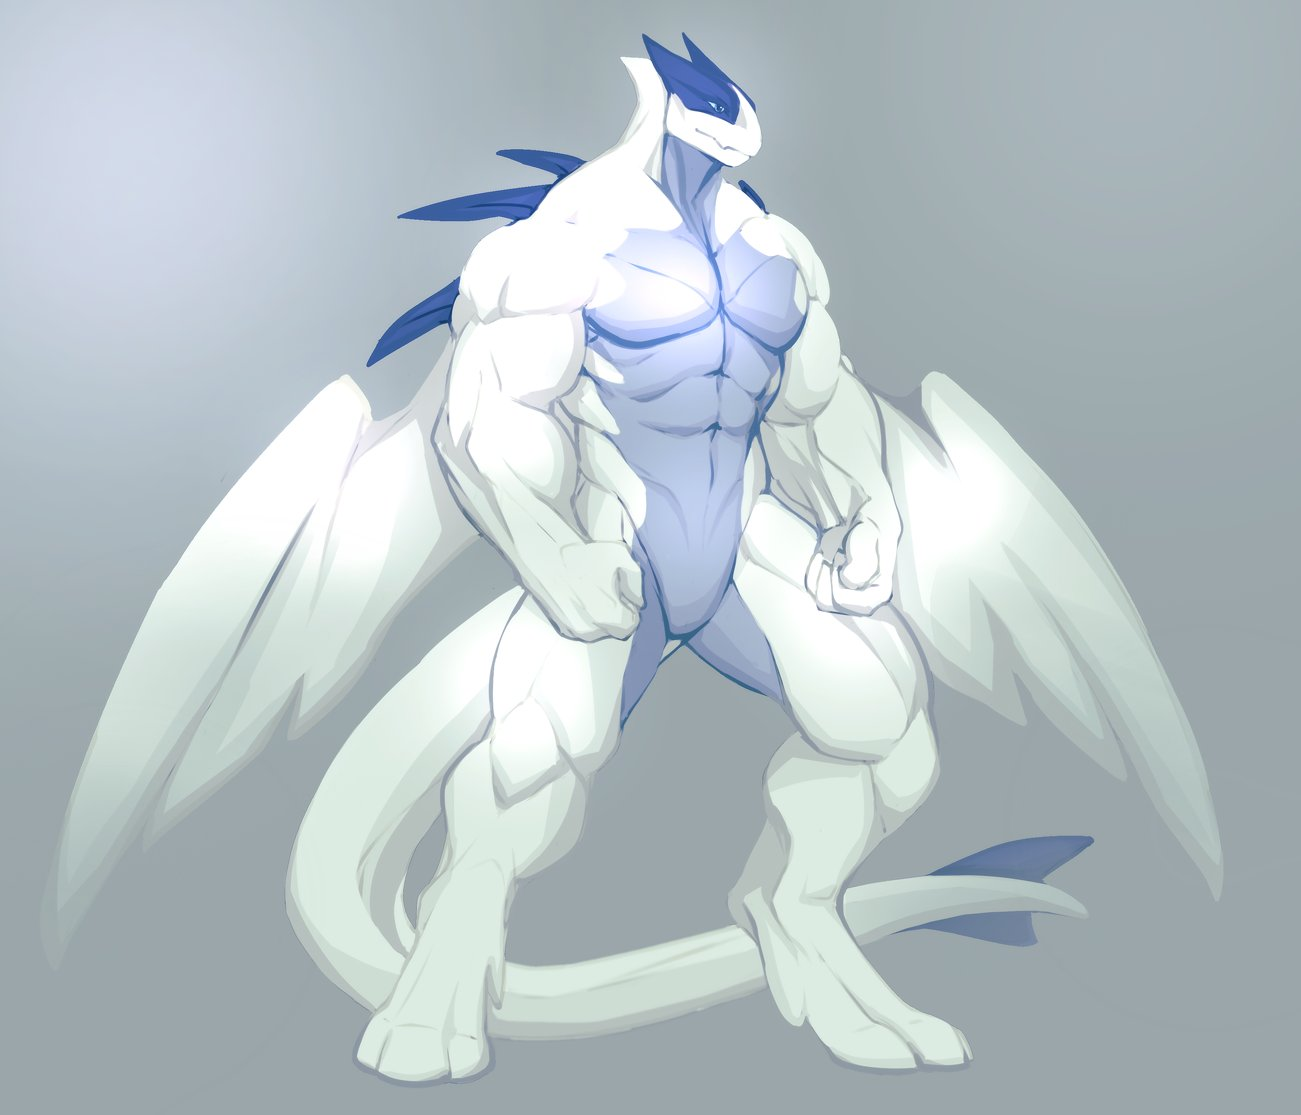 abs anthro biceps big_muscles blue_eyes blue_skin digital_media_(artwork) legendary_pokémon lugia mal_ek male muscular muscular_male nintendo pecs pokémon pokémon_(species) pose simple_background solo spines standing video_games wings